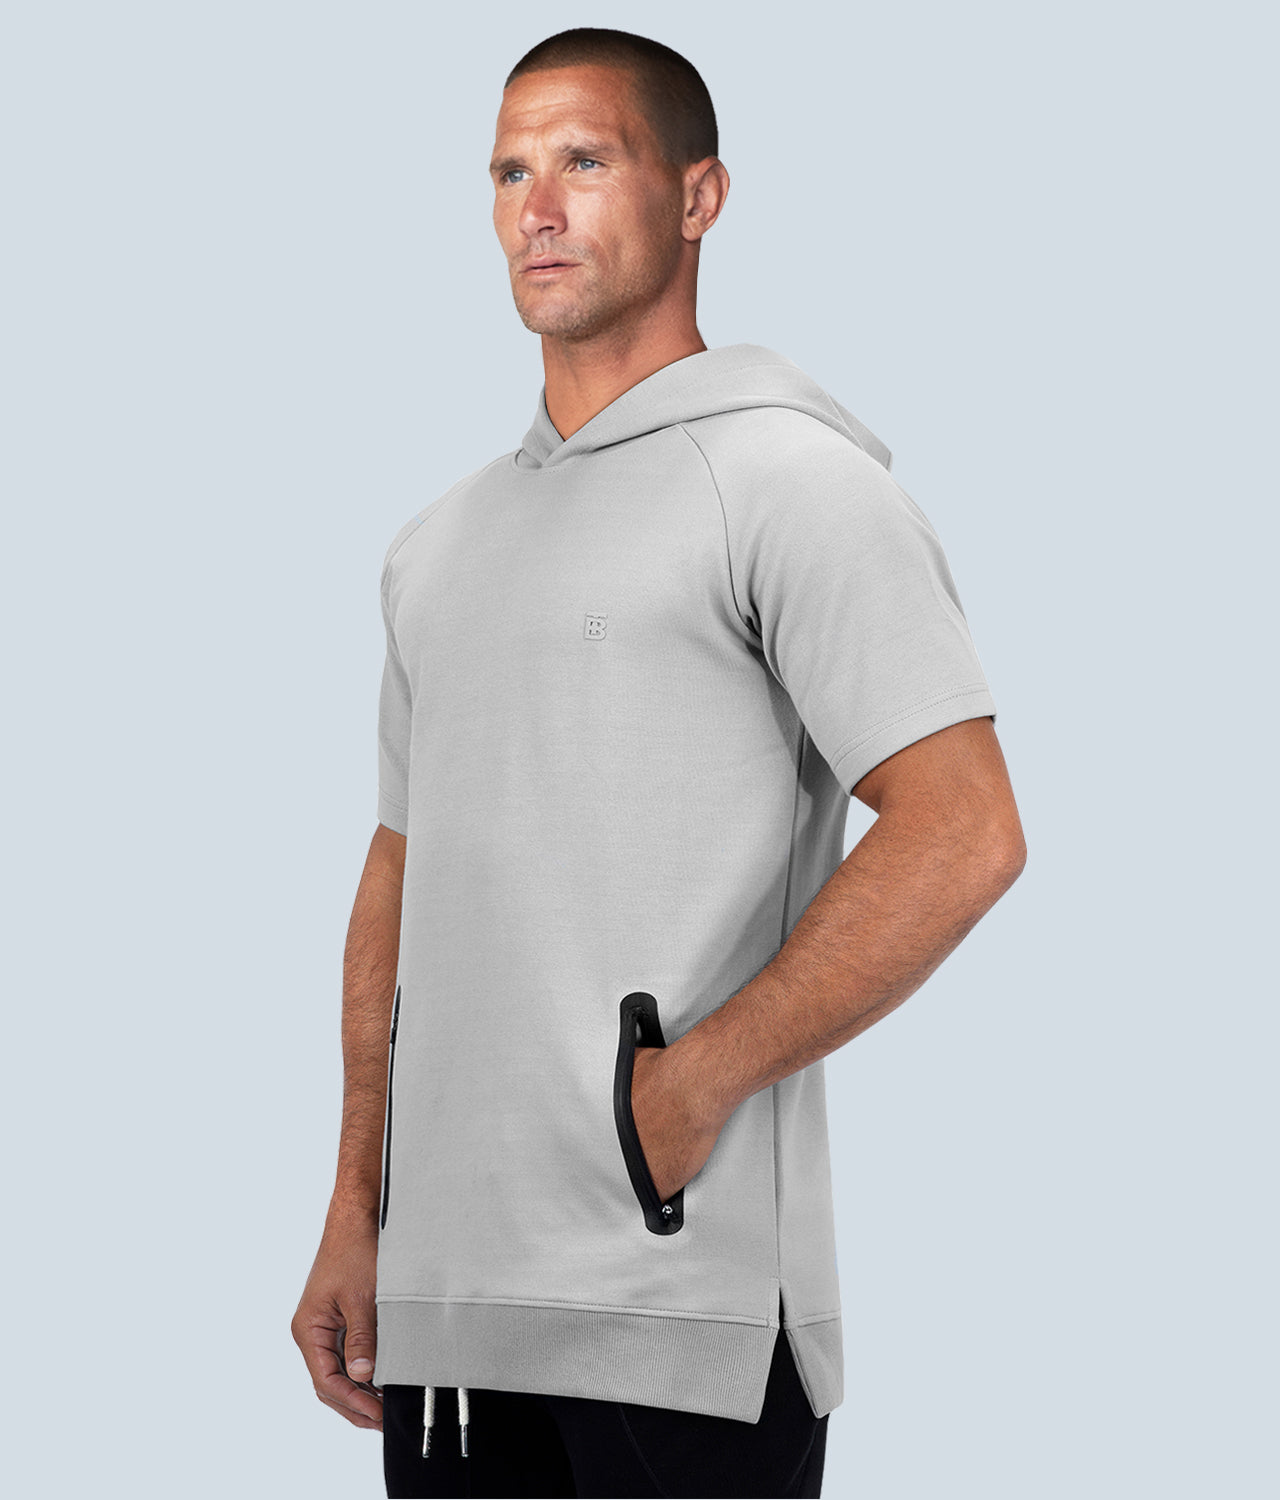 Born Tough Core Gray Heat-Sealed Zippered Pocket Short Sleeve Gym Workout Hoodie for Men